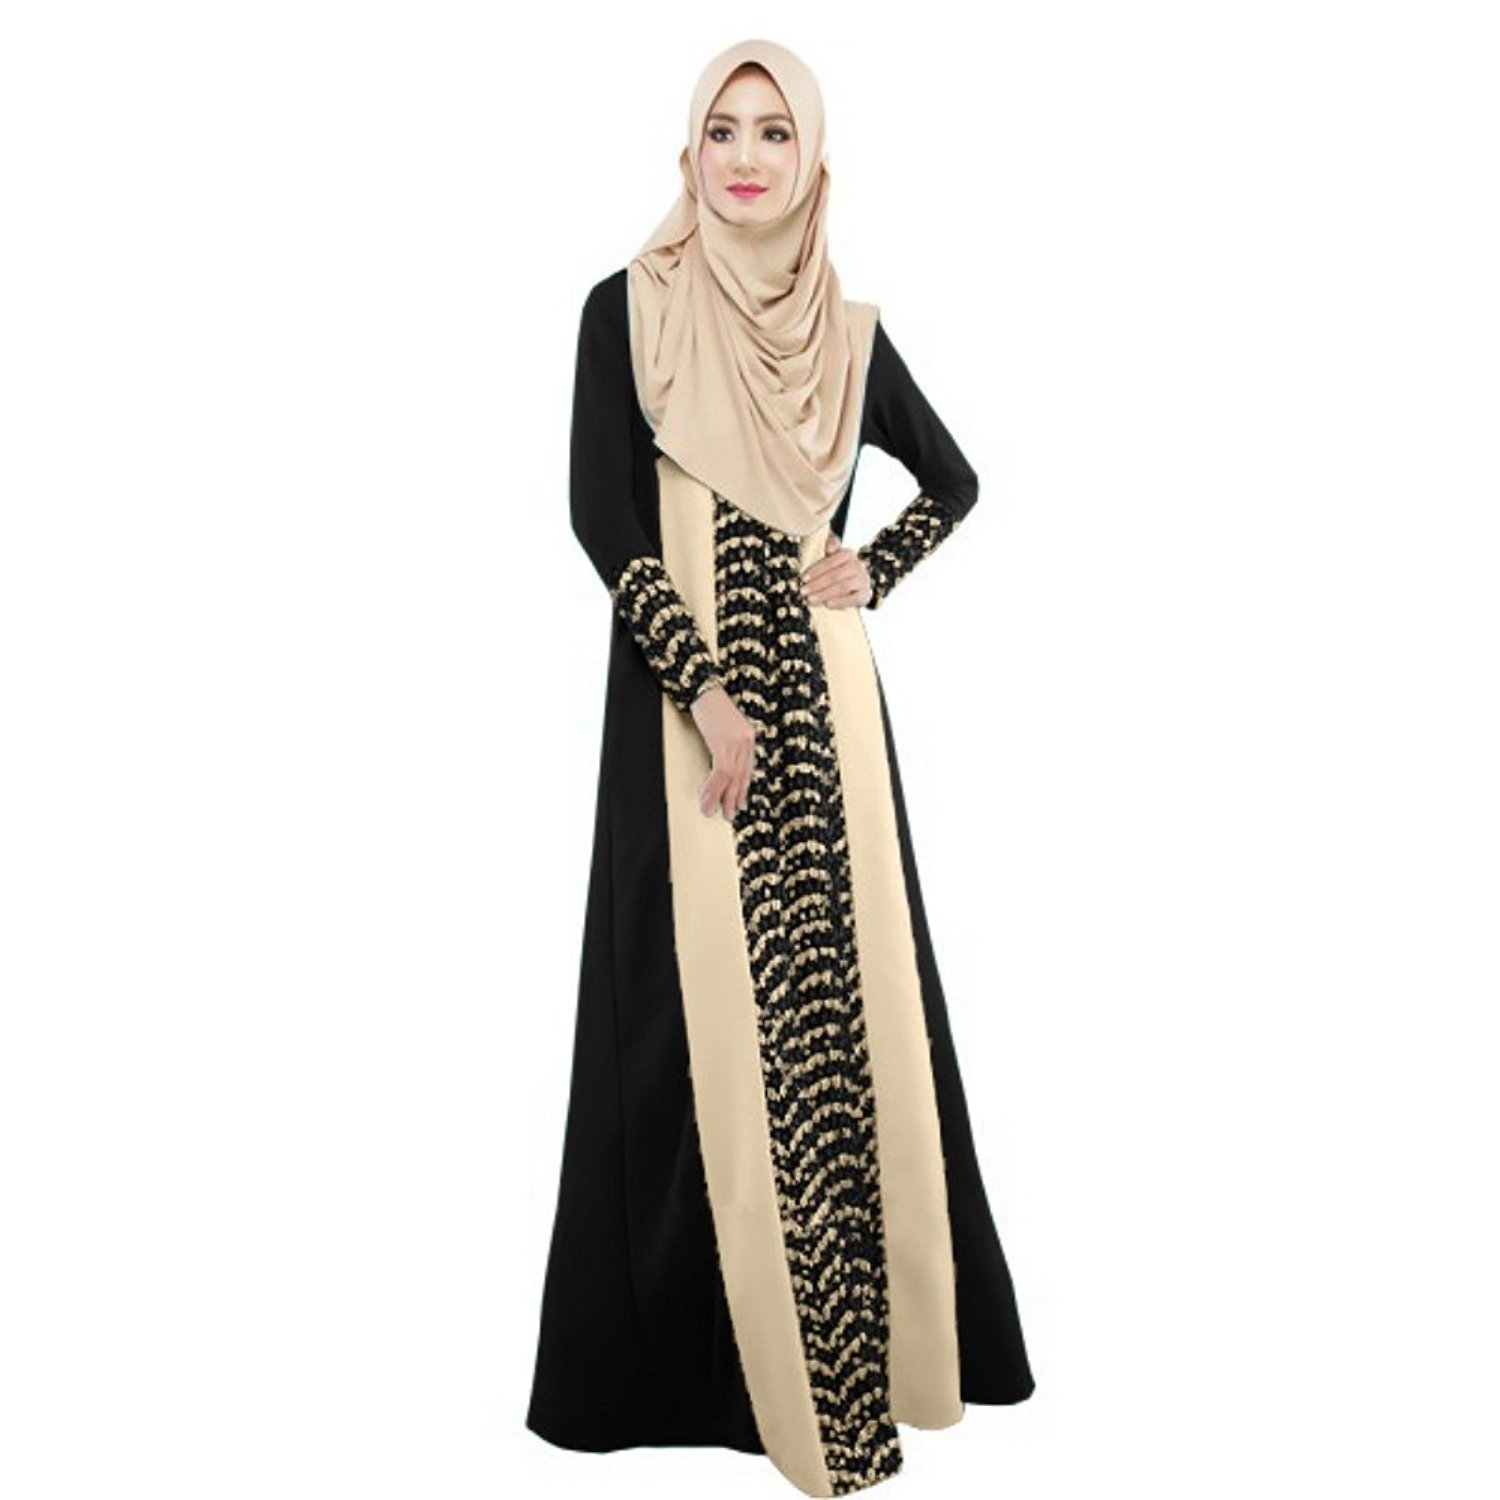 Timall Vintage Women Kaftan Abaya Jilbab Islamic Muslim Cocktail Maxi Dress Timall Wholehalal